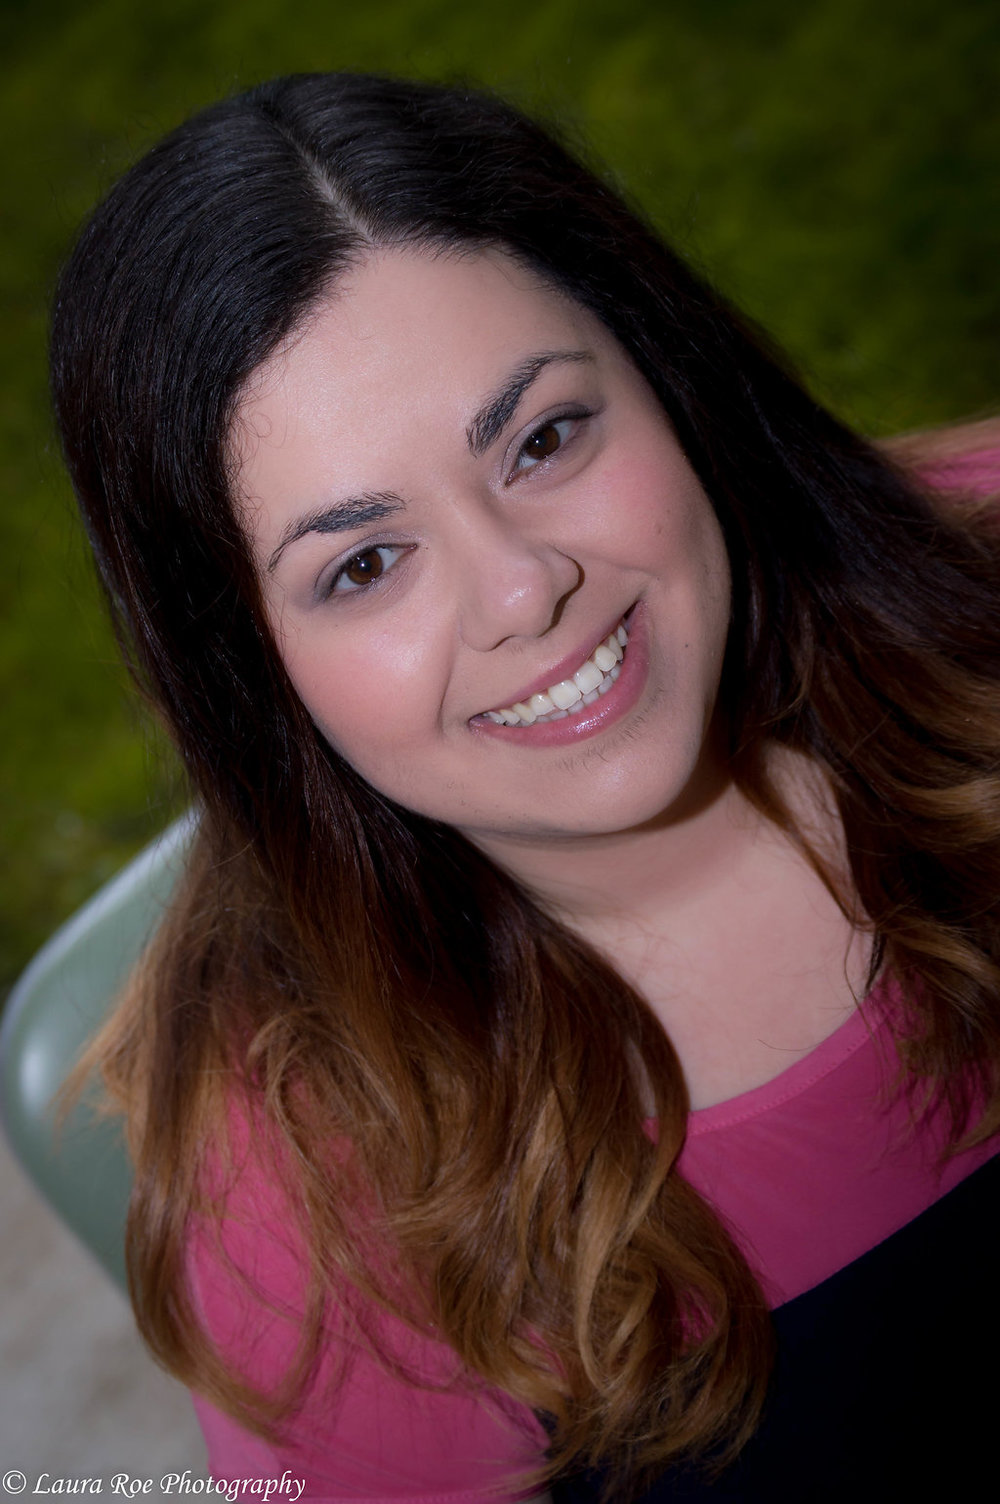 (Pictured above) Rima Akileh, CEO and Co-Founder of Heartfelt Event Planning